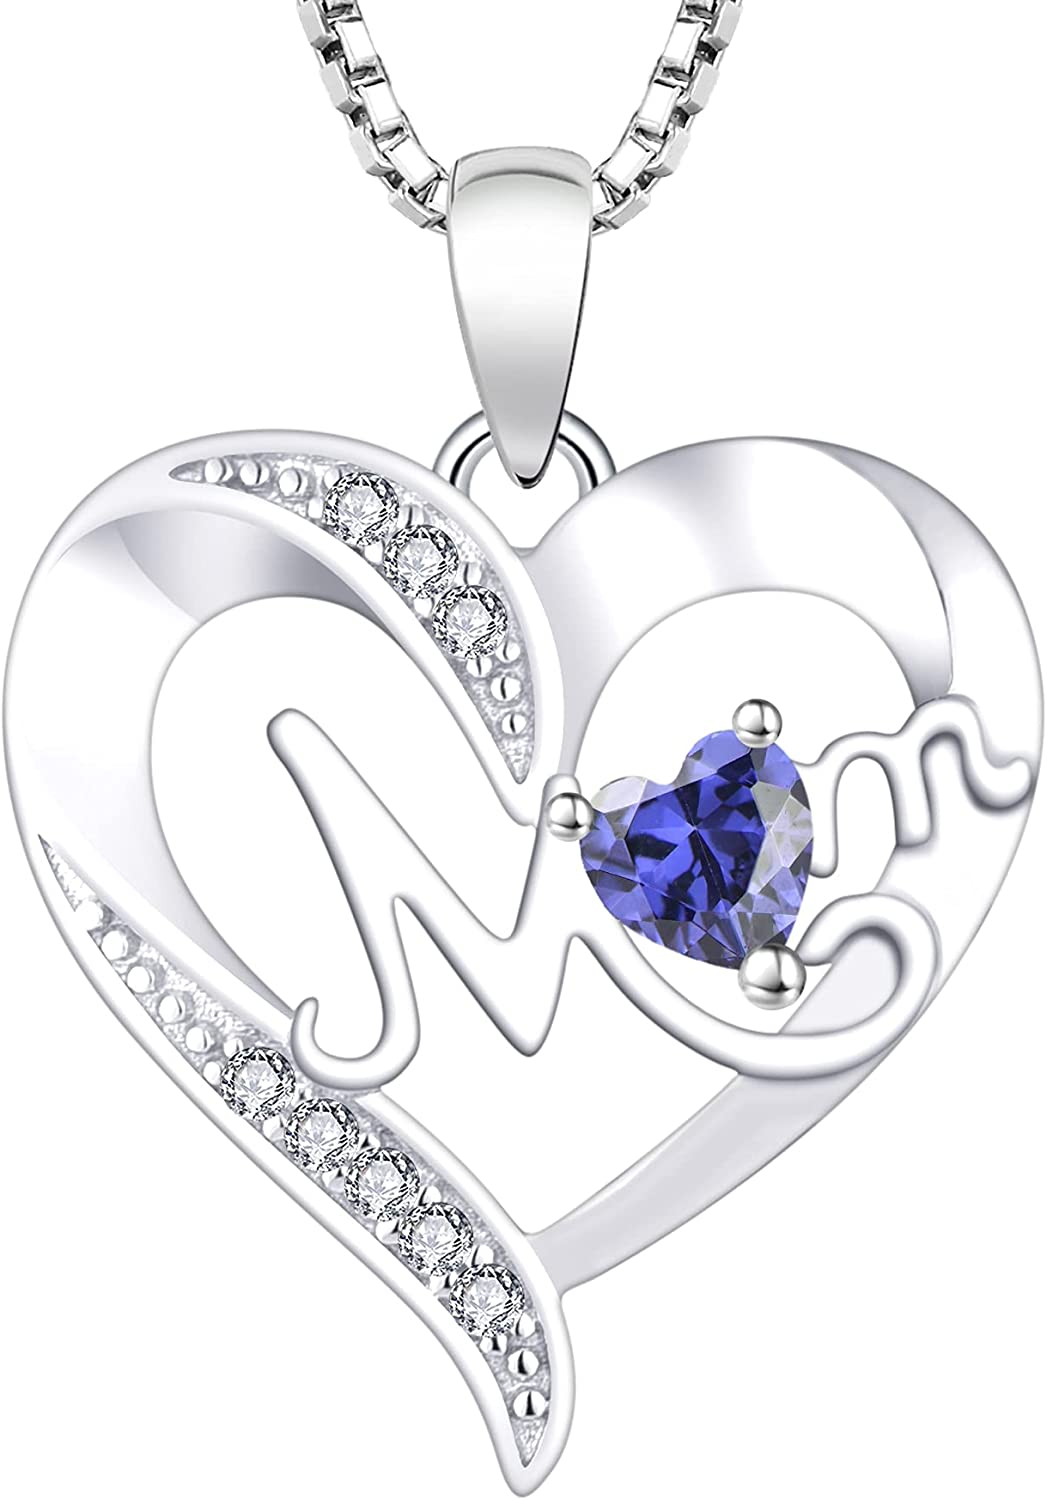 YL Branded goods Women's Heart Necklace Brand Cheap Sale Venue Sterling Pendant Mom Silver Birthstone